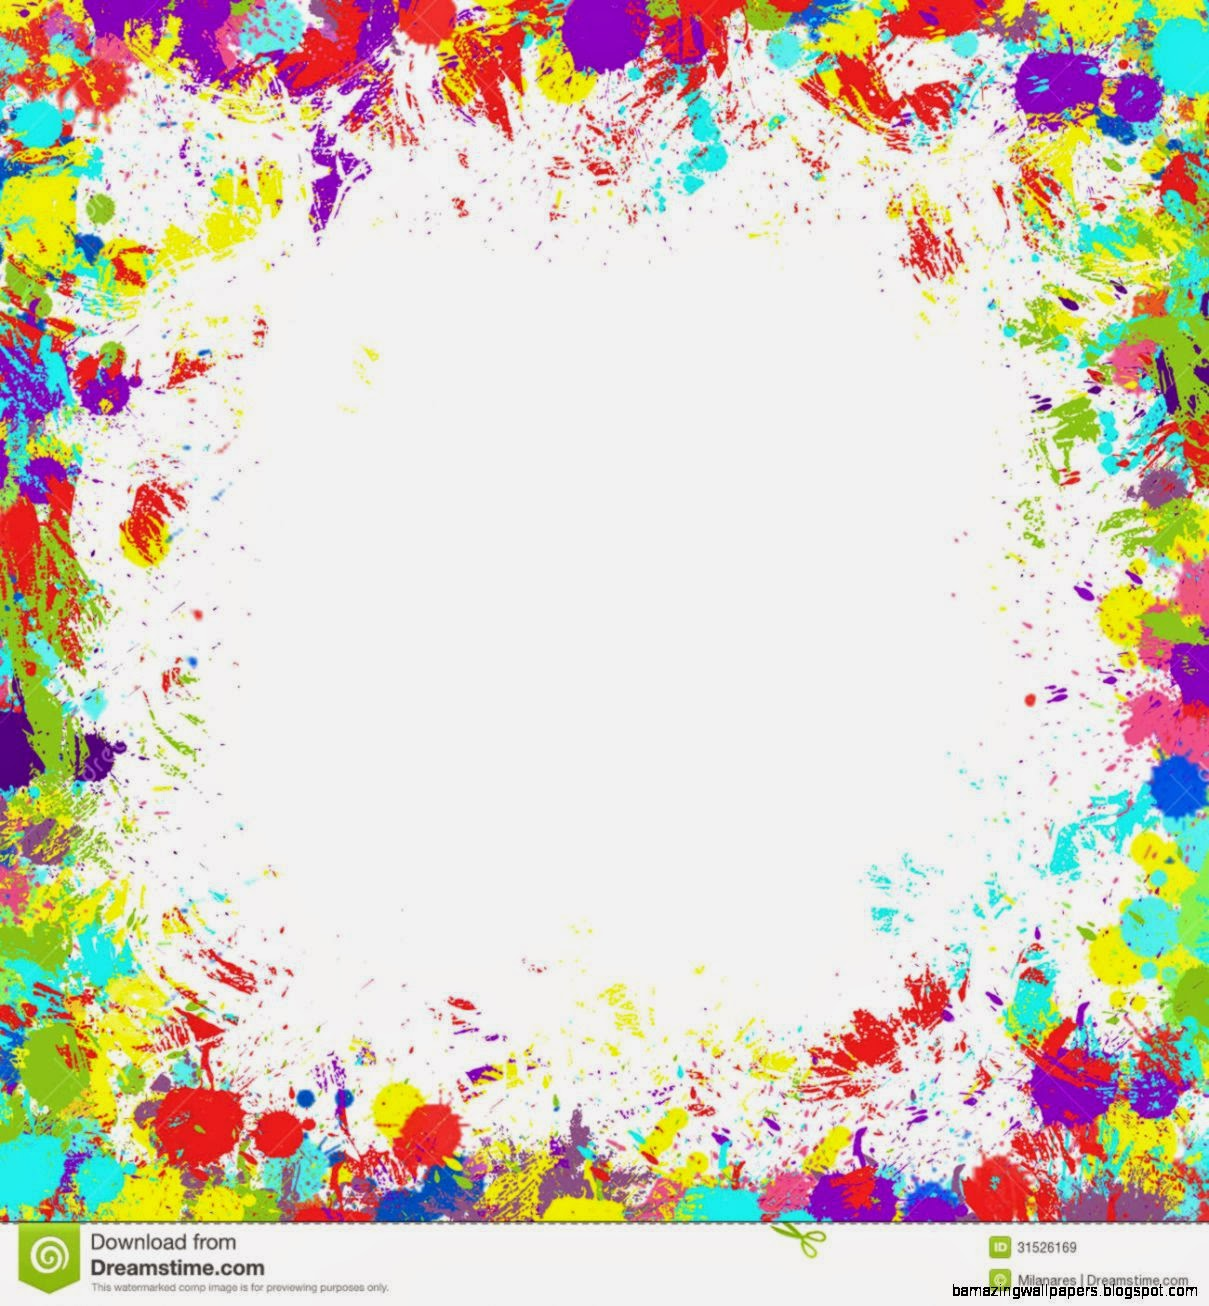 Colorful Paint Splatter Border | Amazing Wallpapers